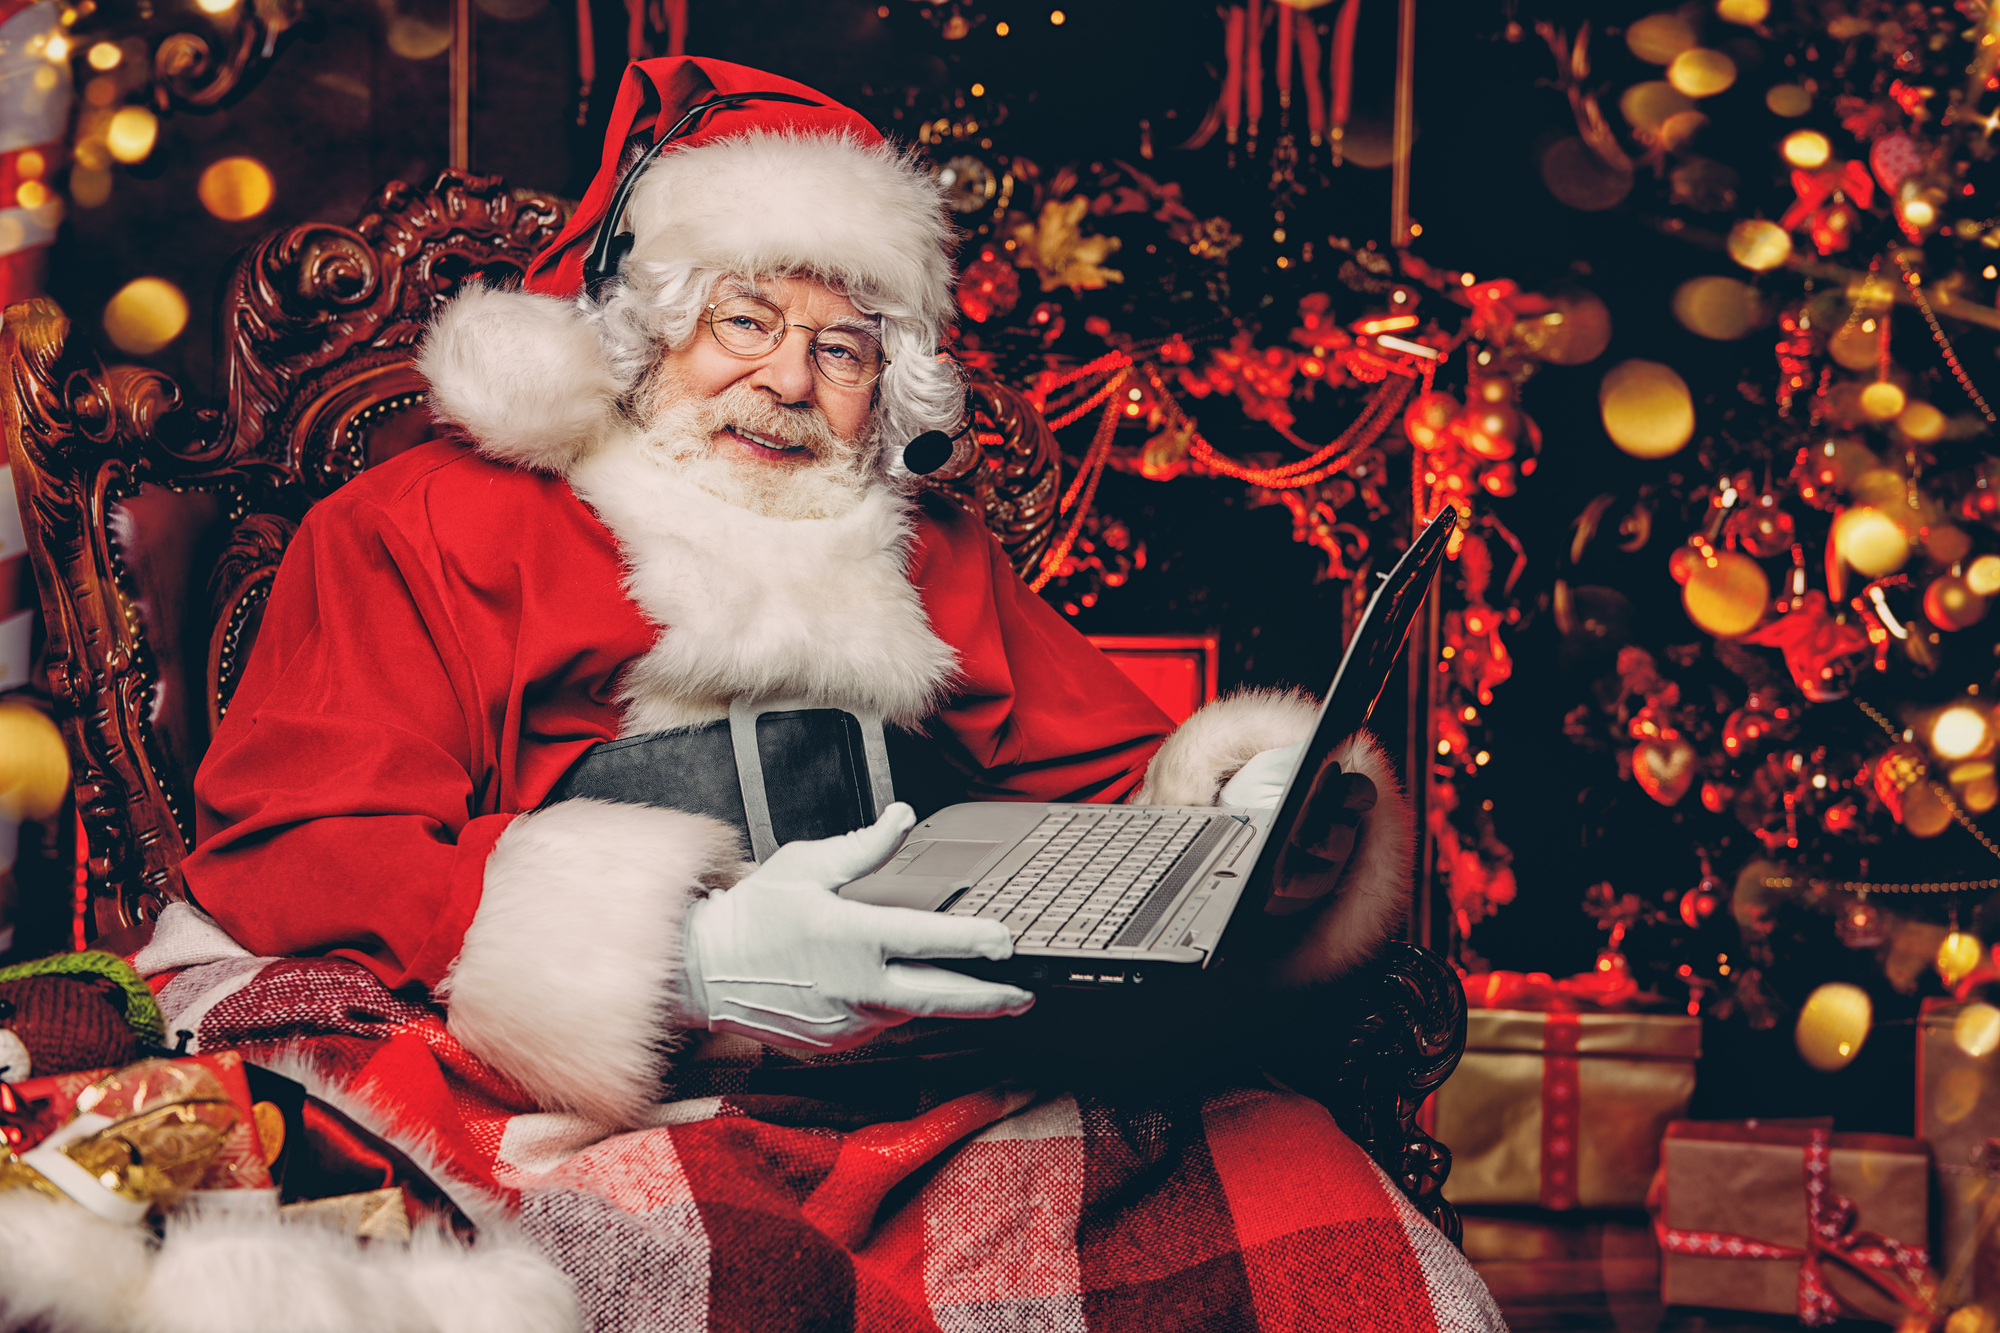 Santa's Grotto Live Launches Recruitment Drive To Meet Demand For Video Call With Santa